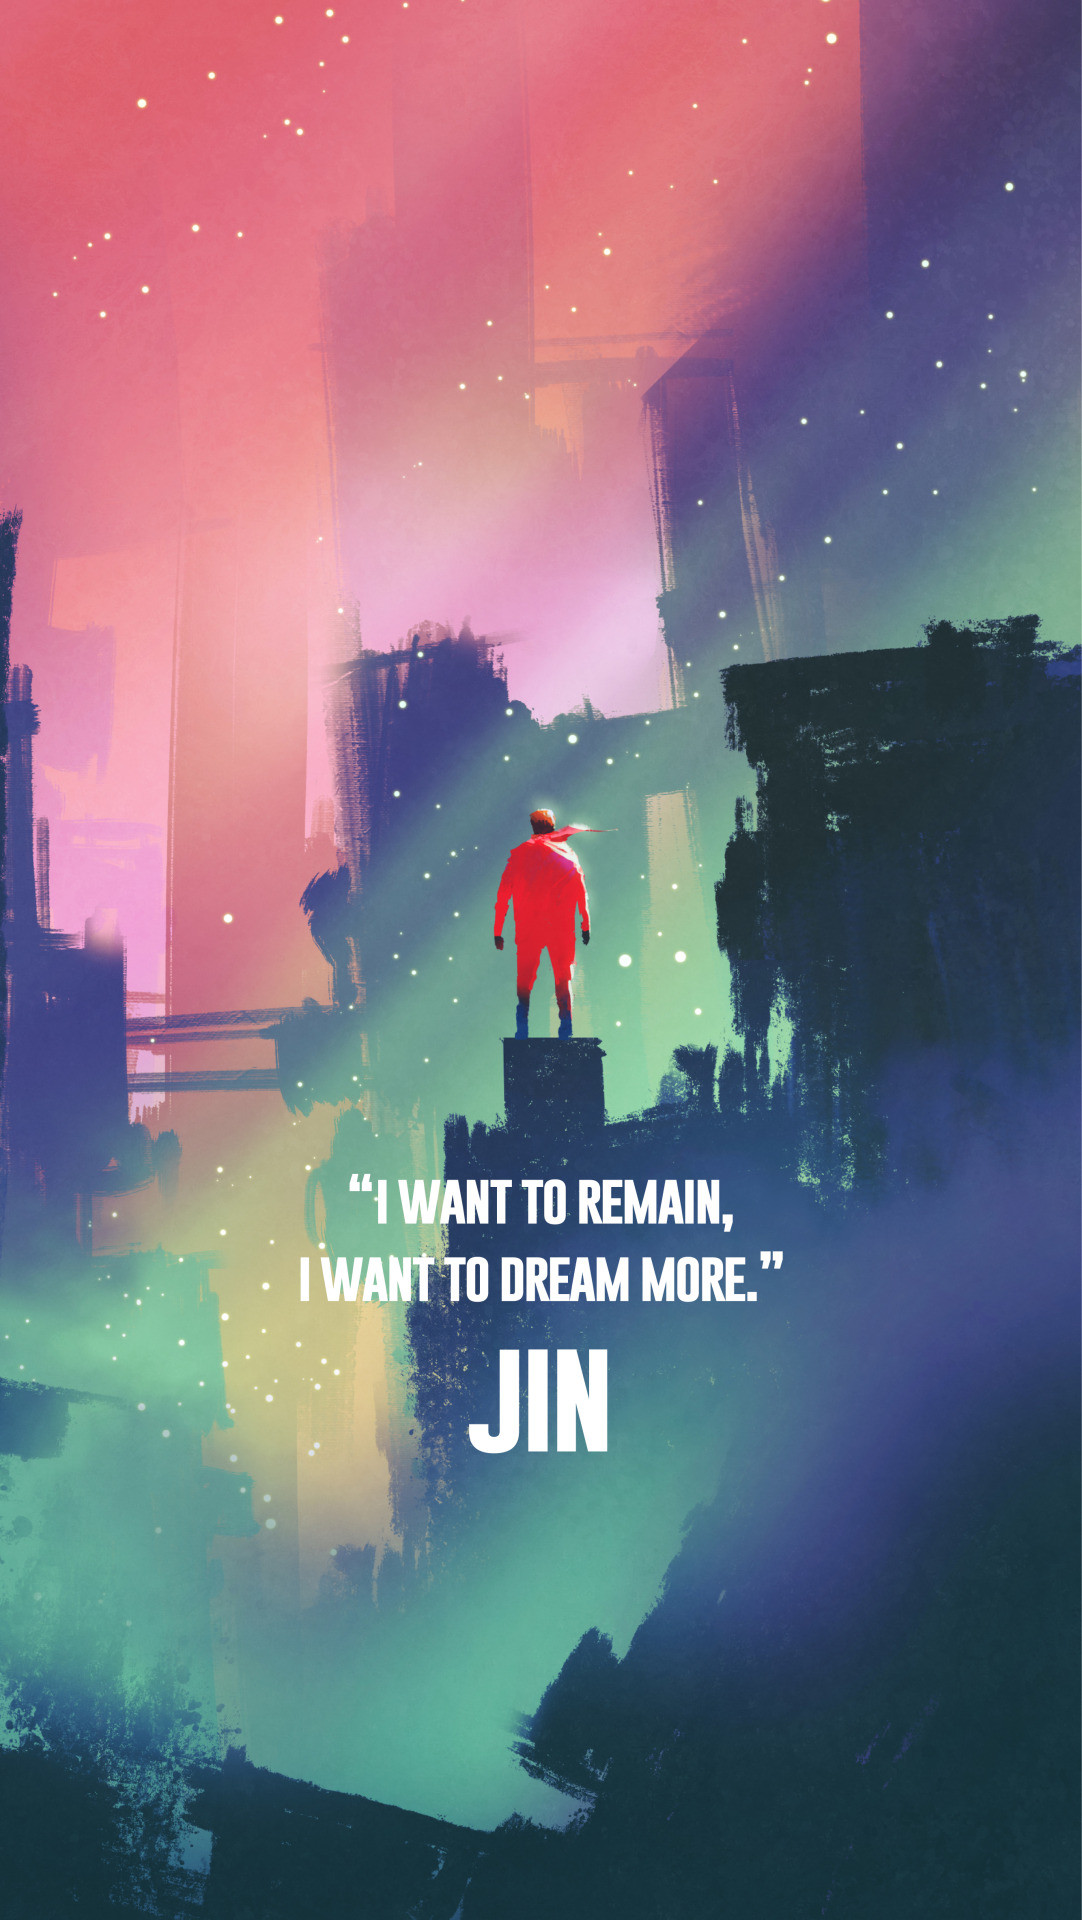 Jin Bts Wallpaper Iphone 51+ Group Wallpapers